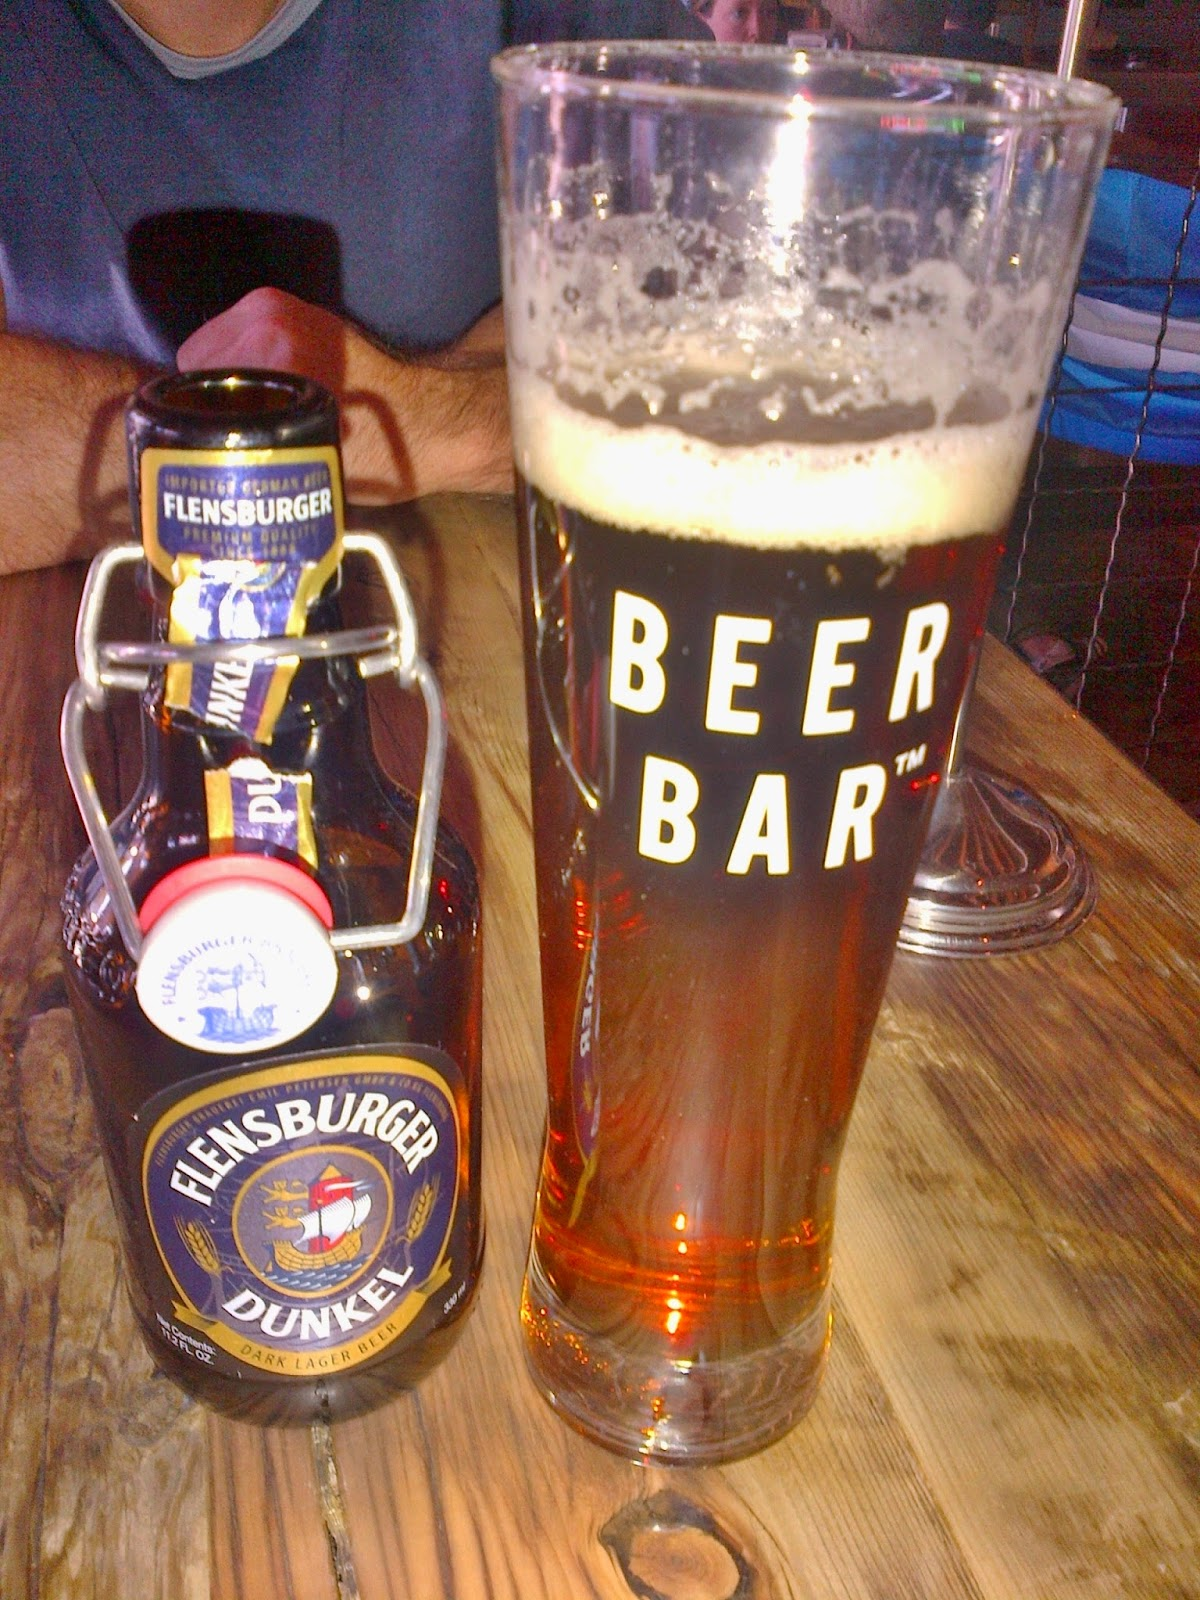 Guten abend in celebration of oktoberfest some more german goodness for you my friends a pairing of accept s wunderbar blood of the nations and a